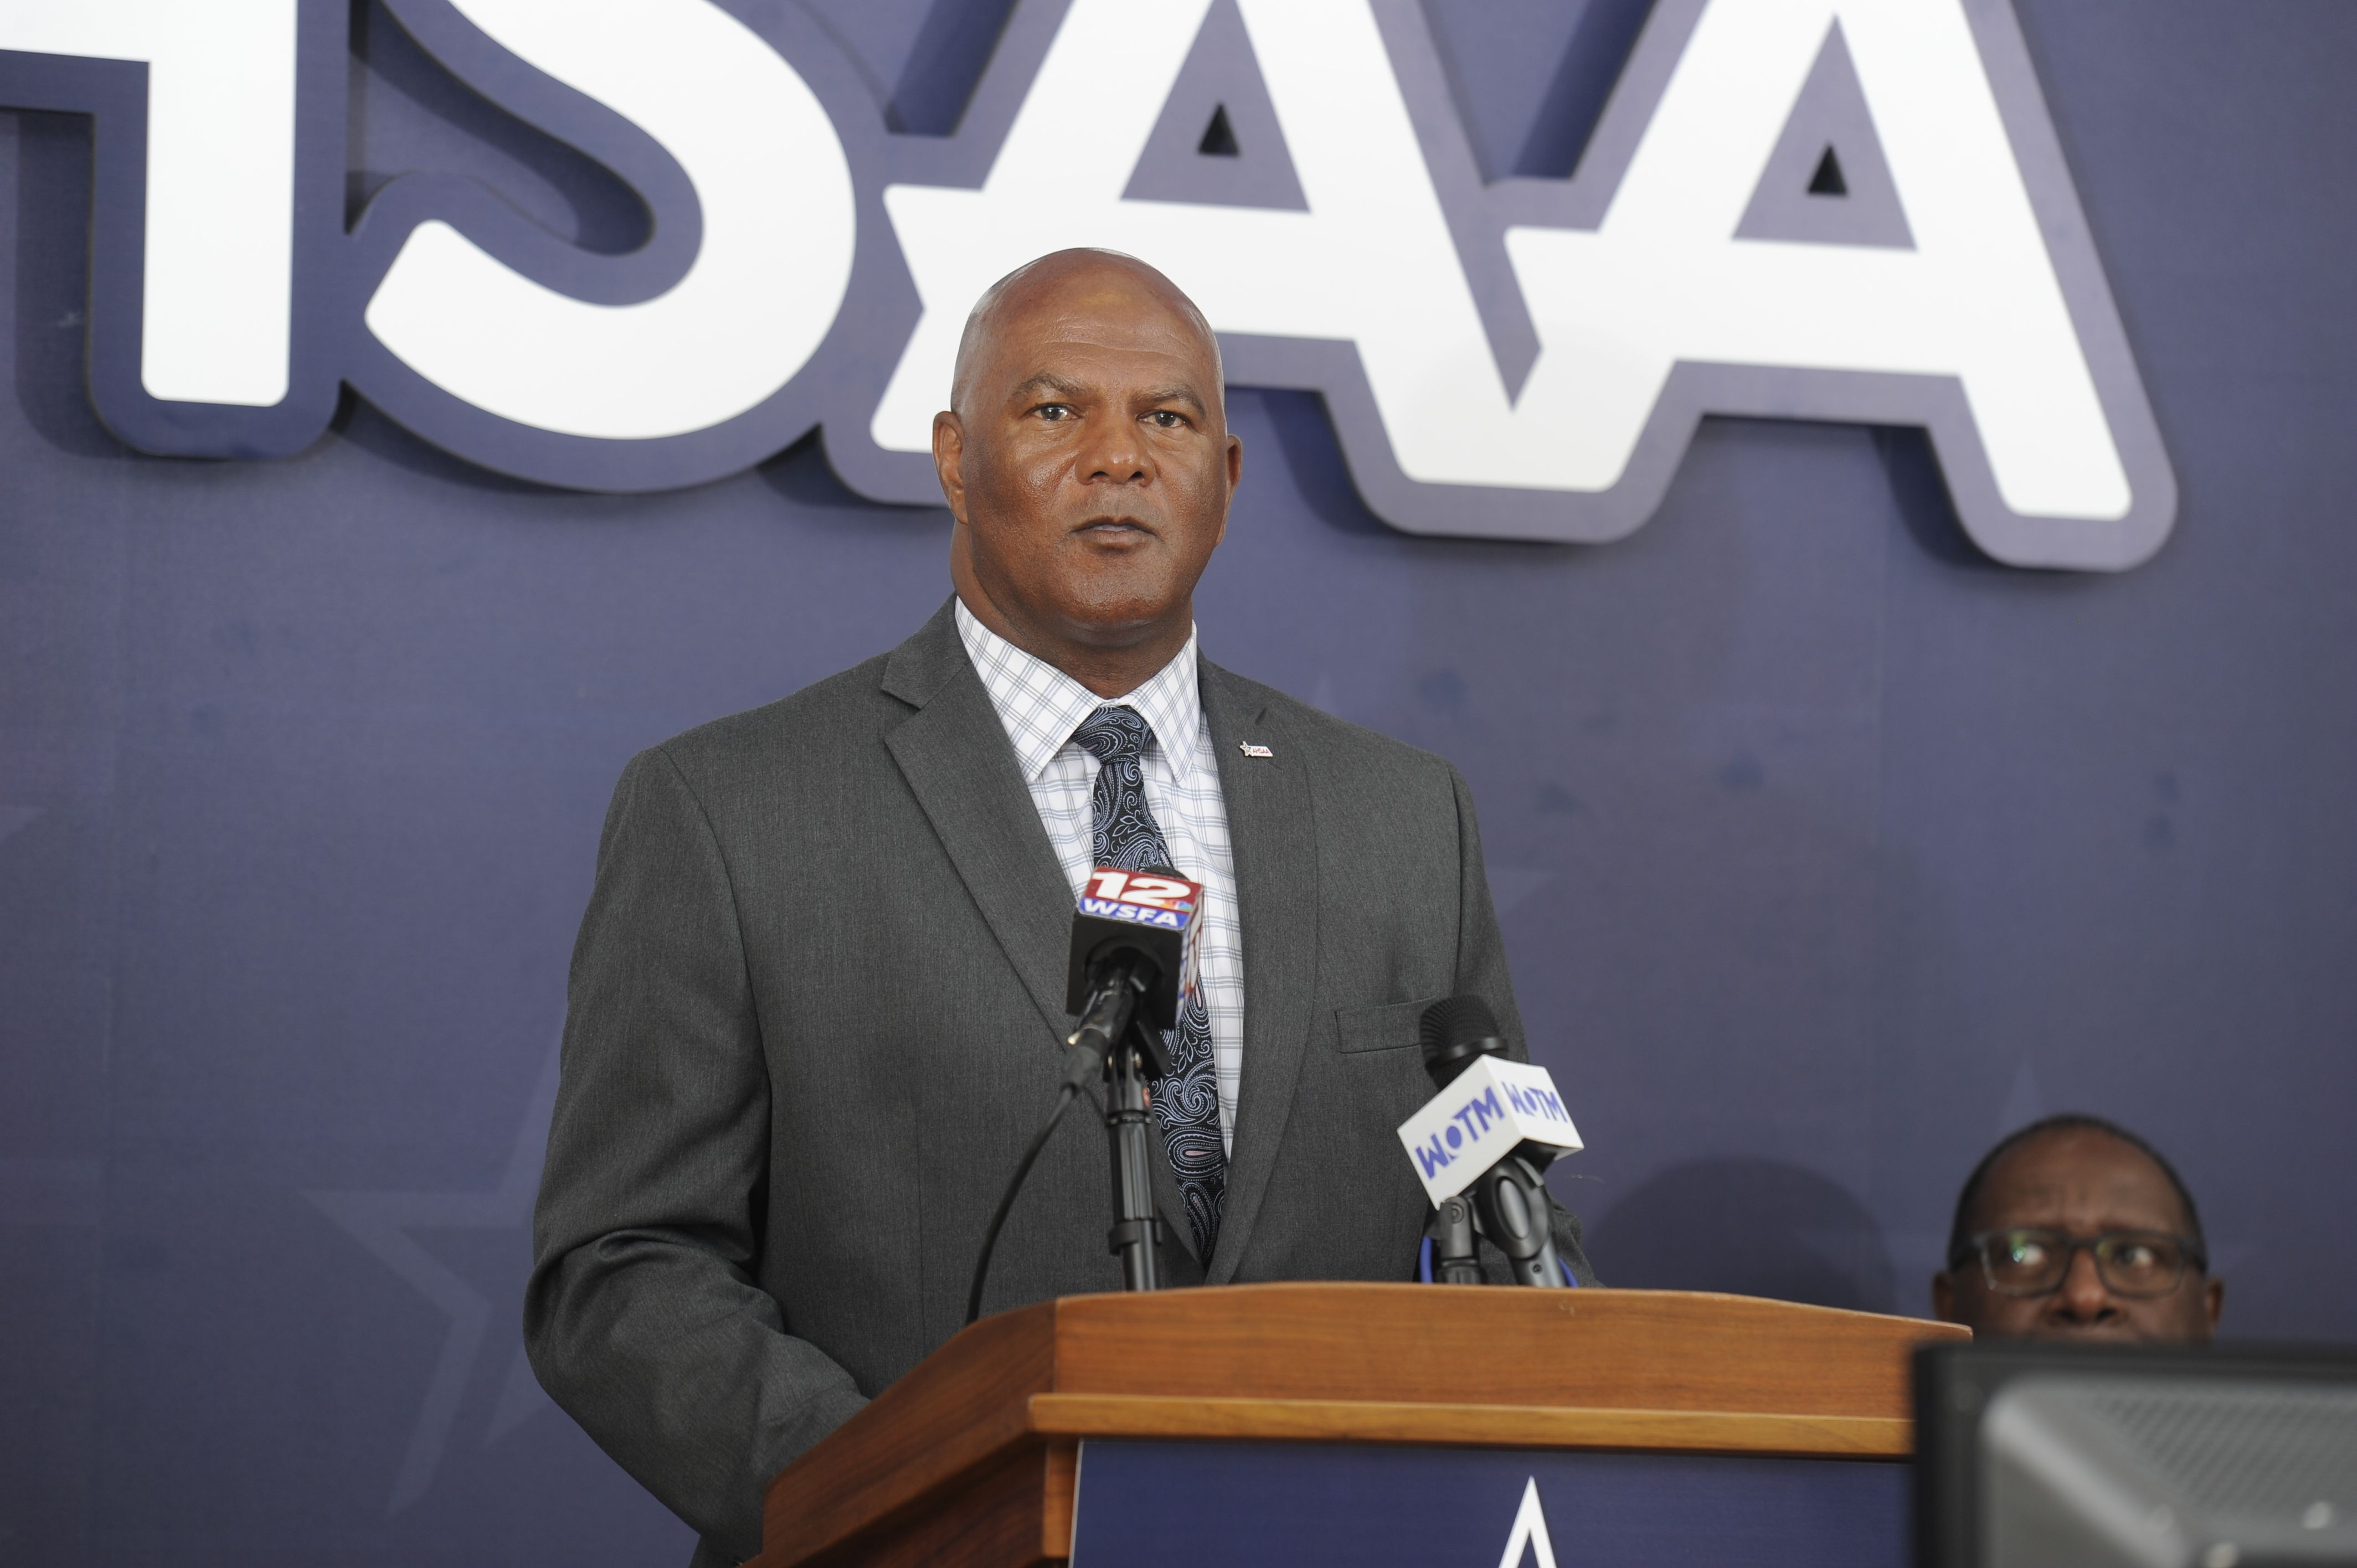 Central Board of Control Selects Alvin Briggs As the Next AHSAA Executive Director